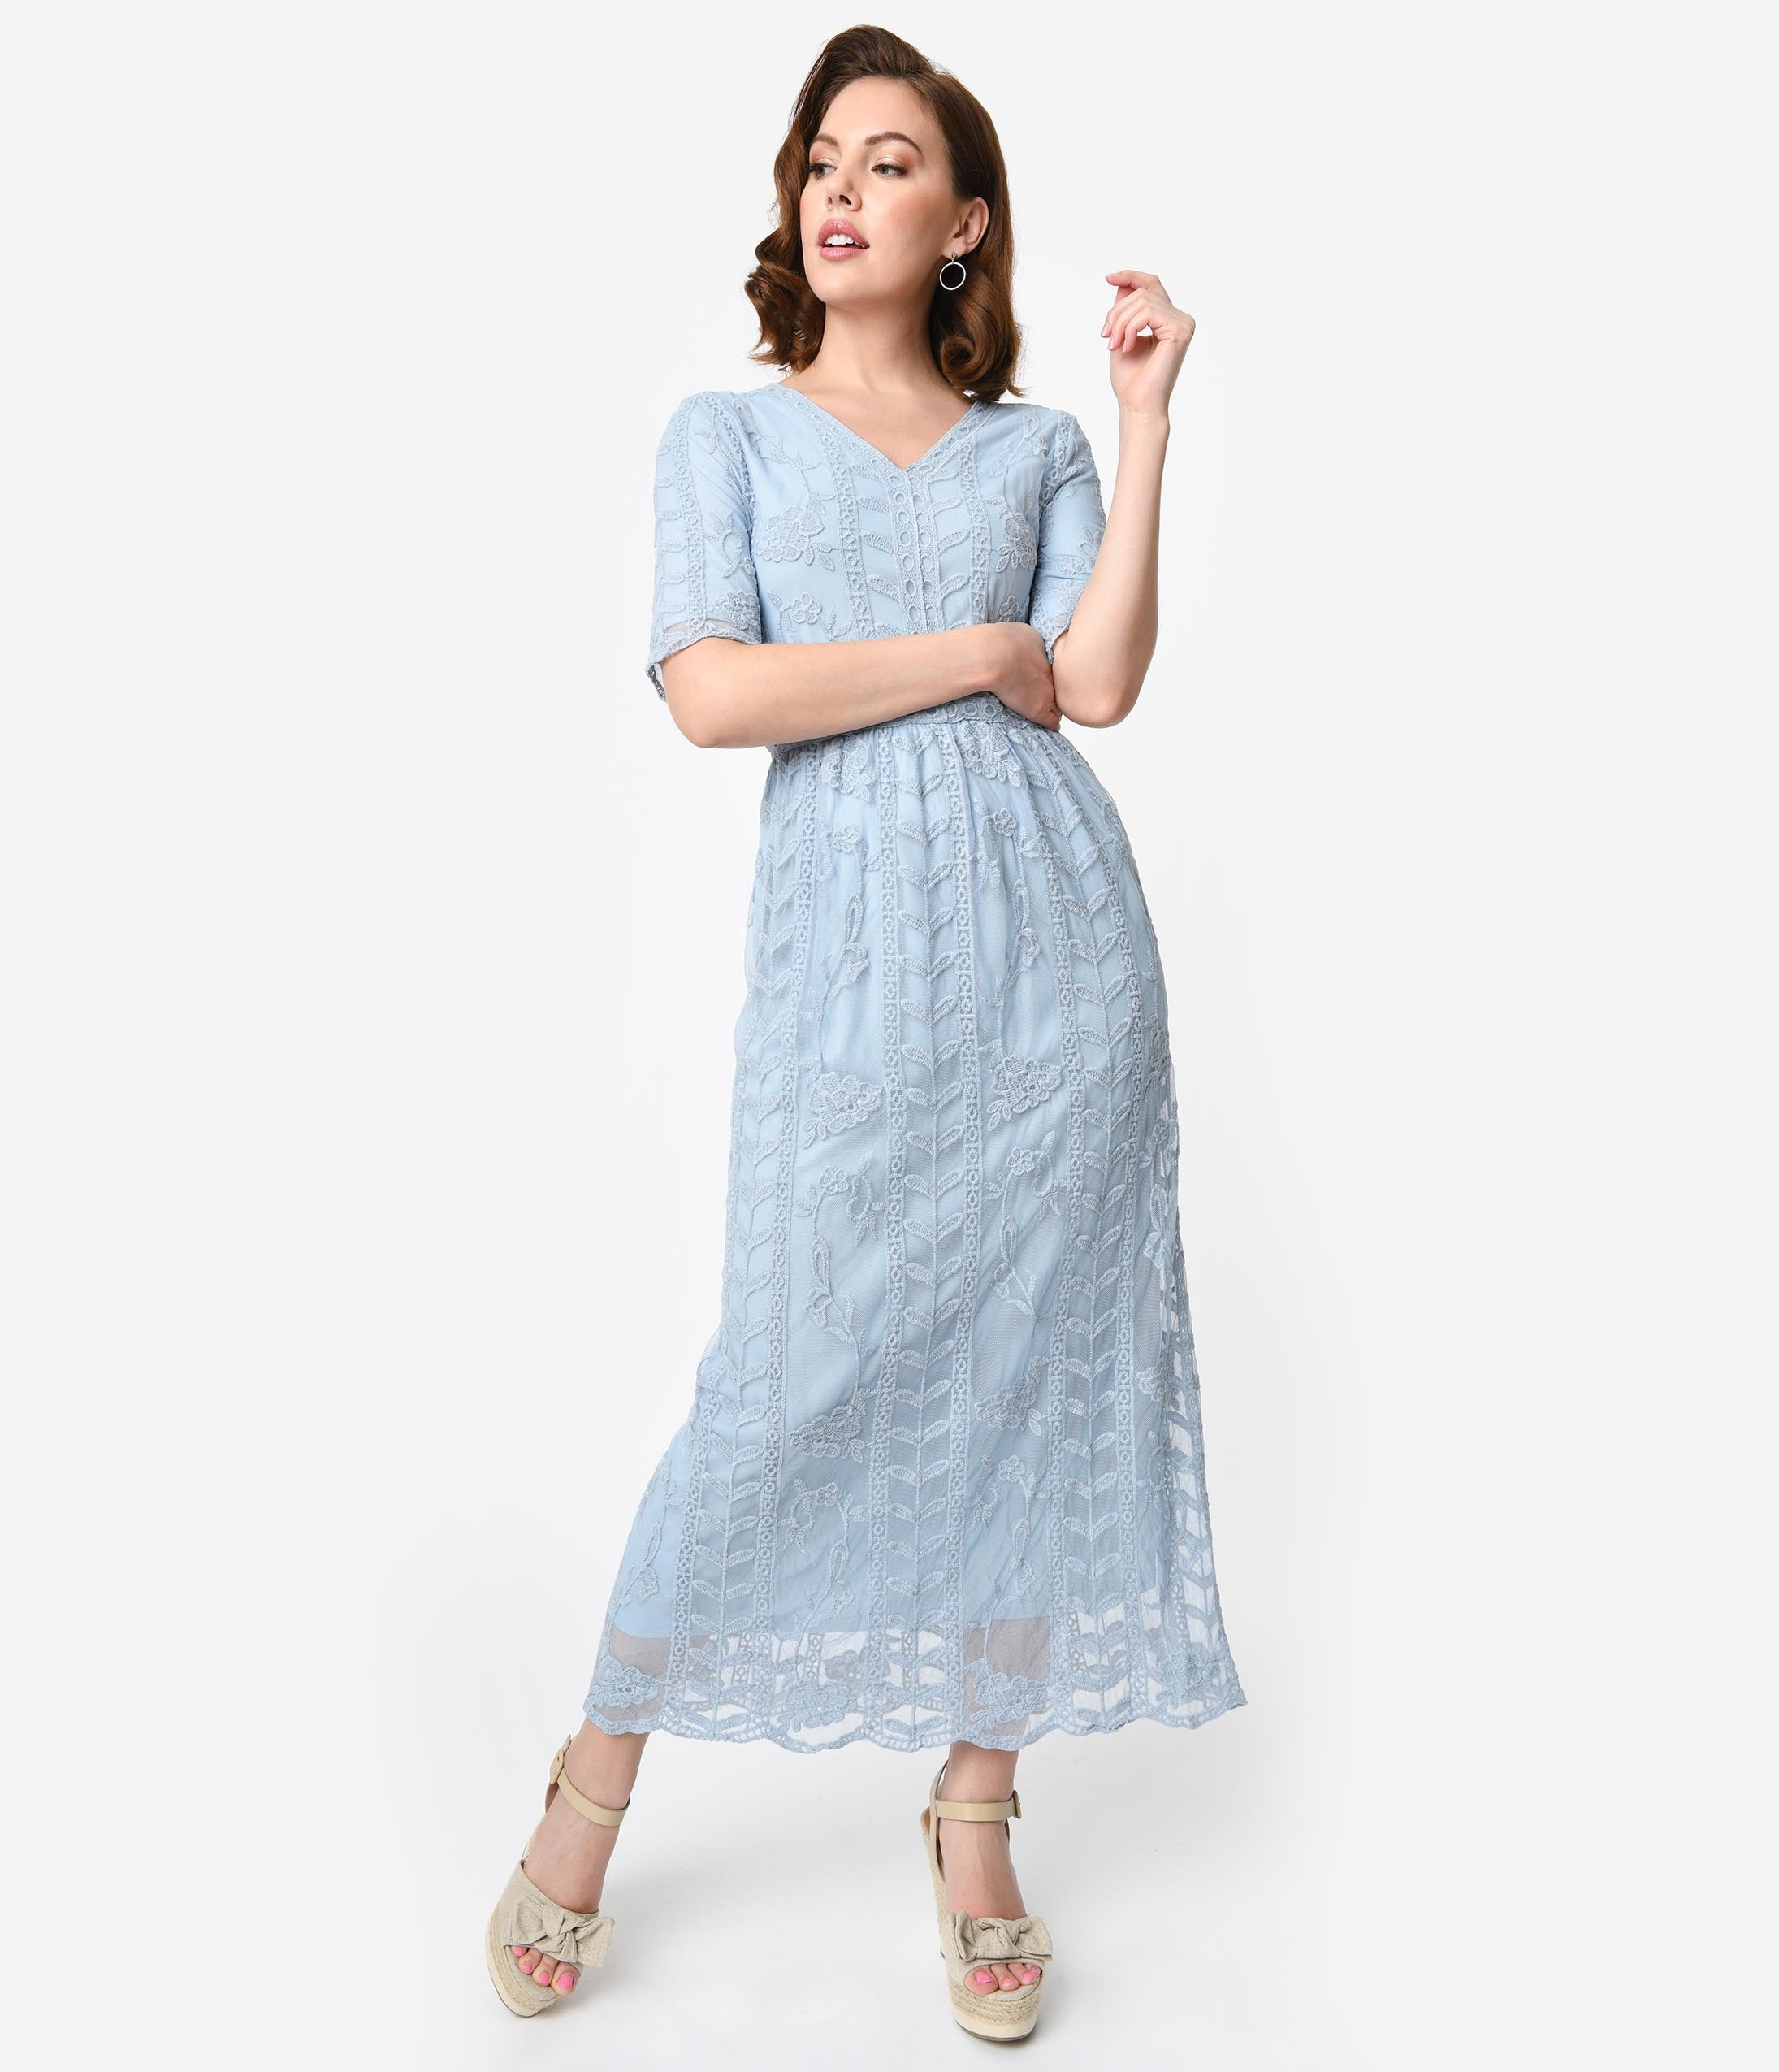 d92c5f85e9c Maxi Dresses   70s-Style Long Dresses – Unique Vintage